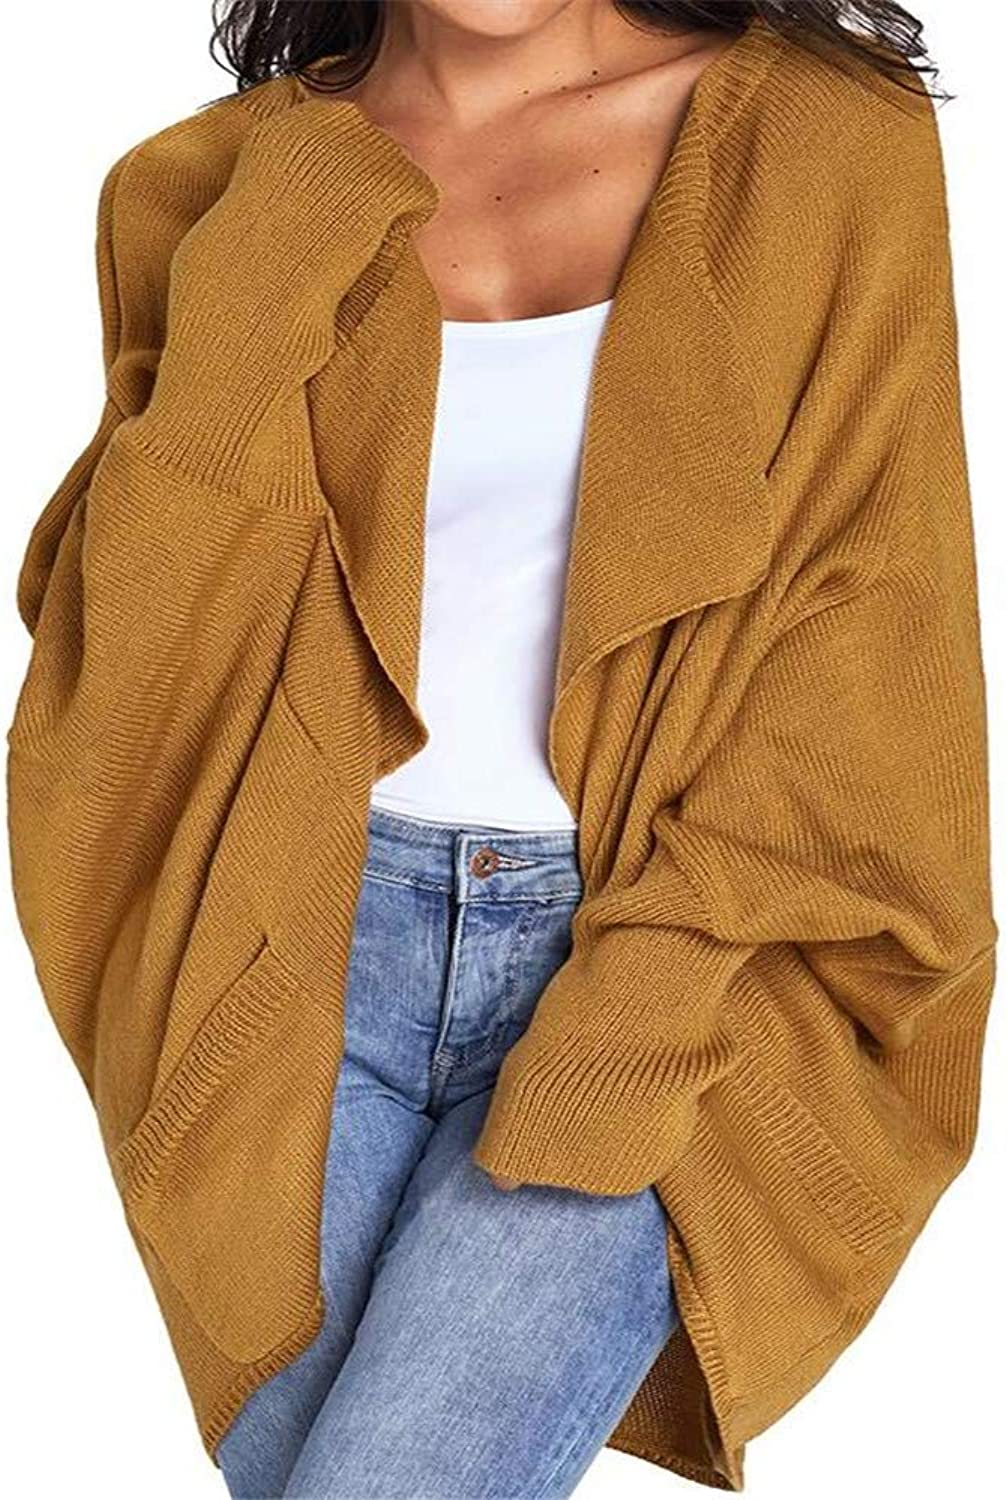 MAZF Autumn and Winter Cardigan Long Sleeve with Pocket Long Knit Sweater Coat